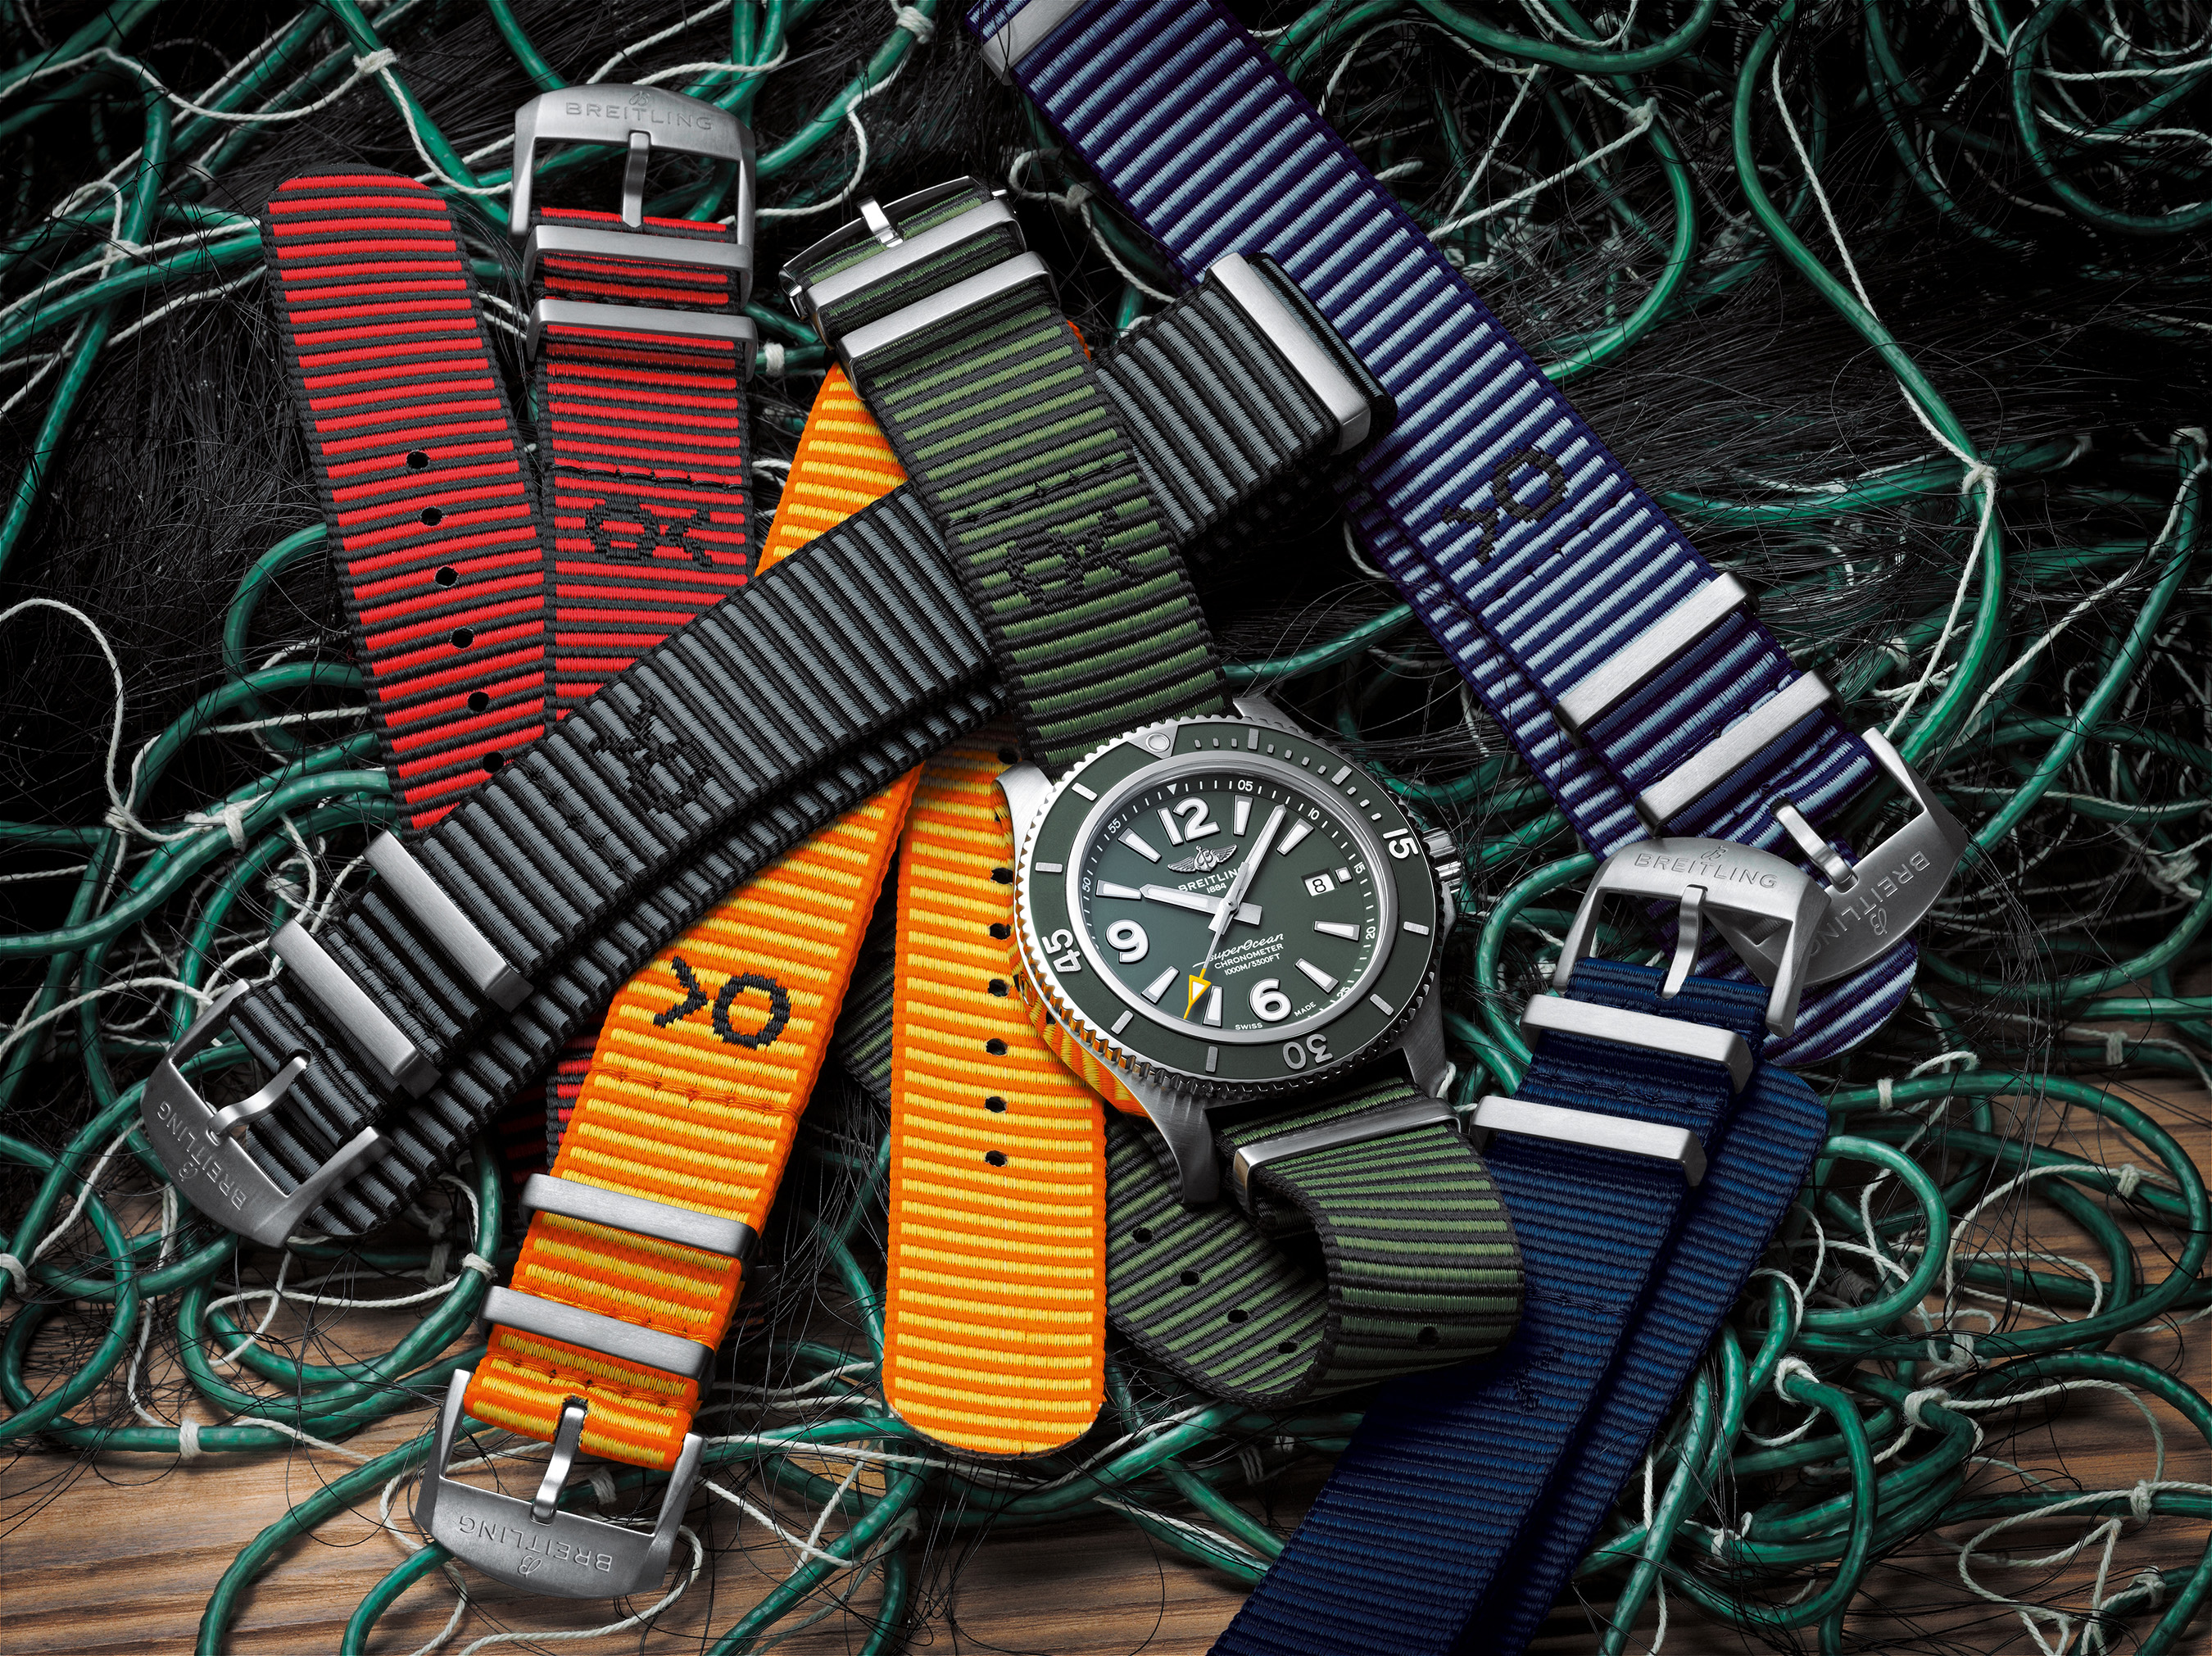 The Breitling Superocean Automatic 44 Outerknown and sustainable Outerknown ECONYL® NATO strap collection.